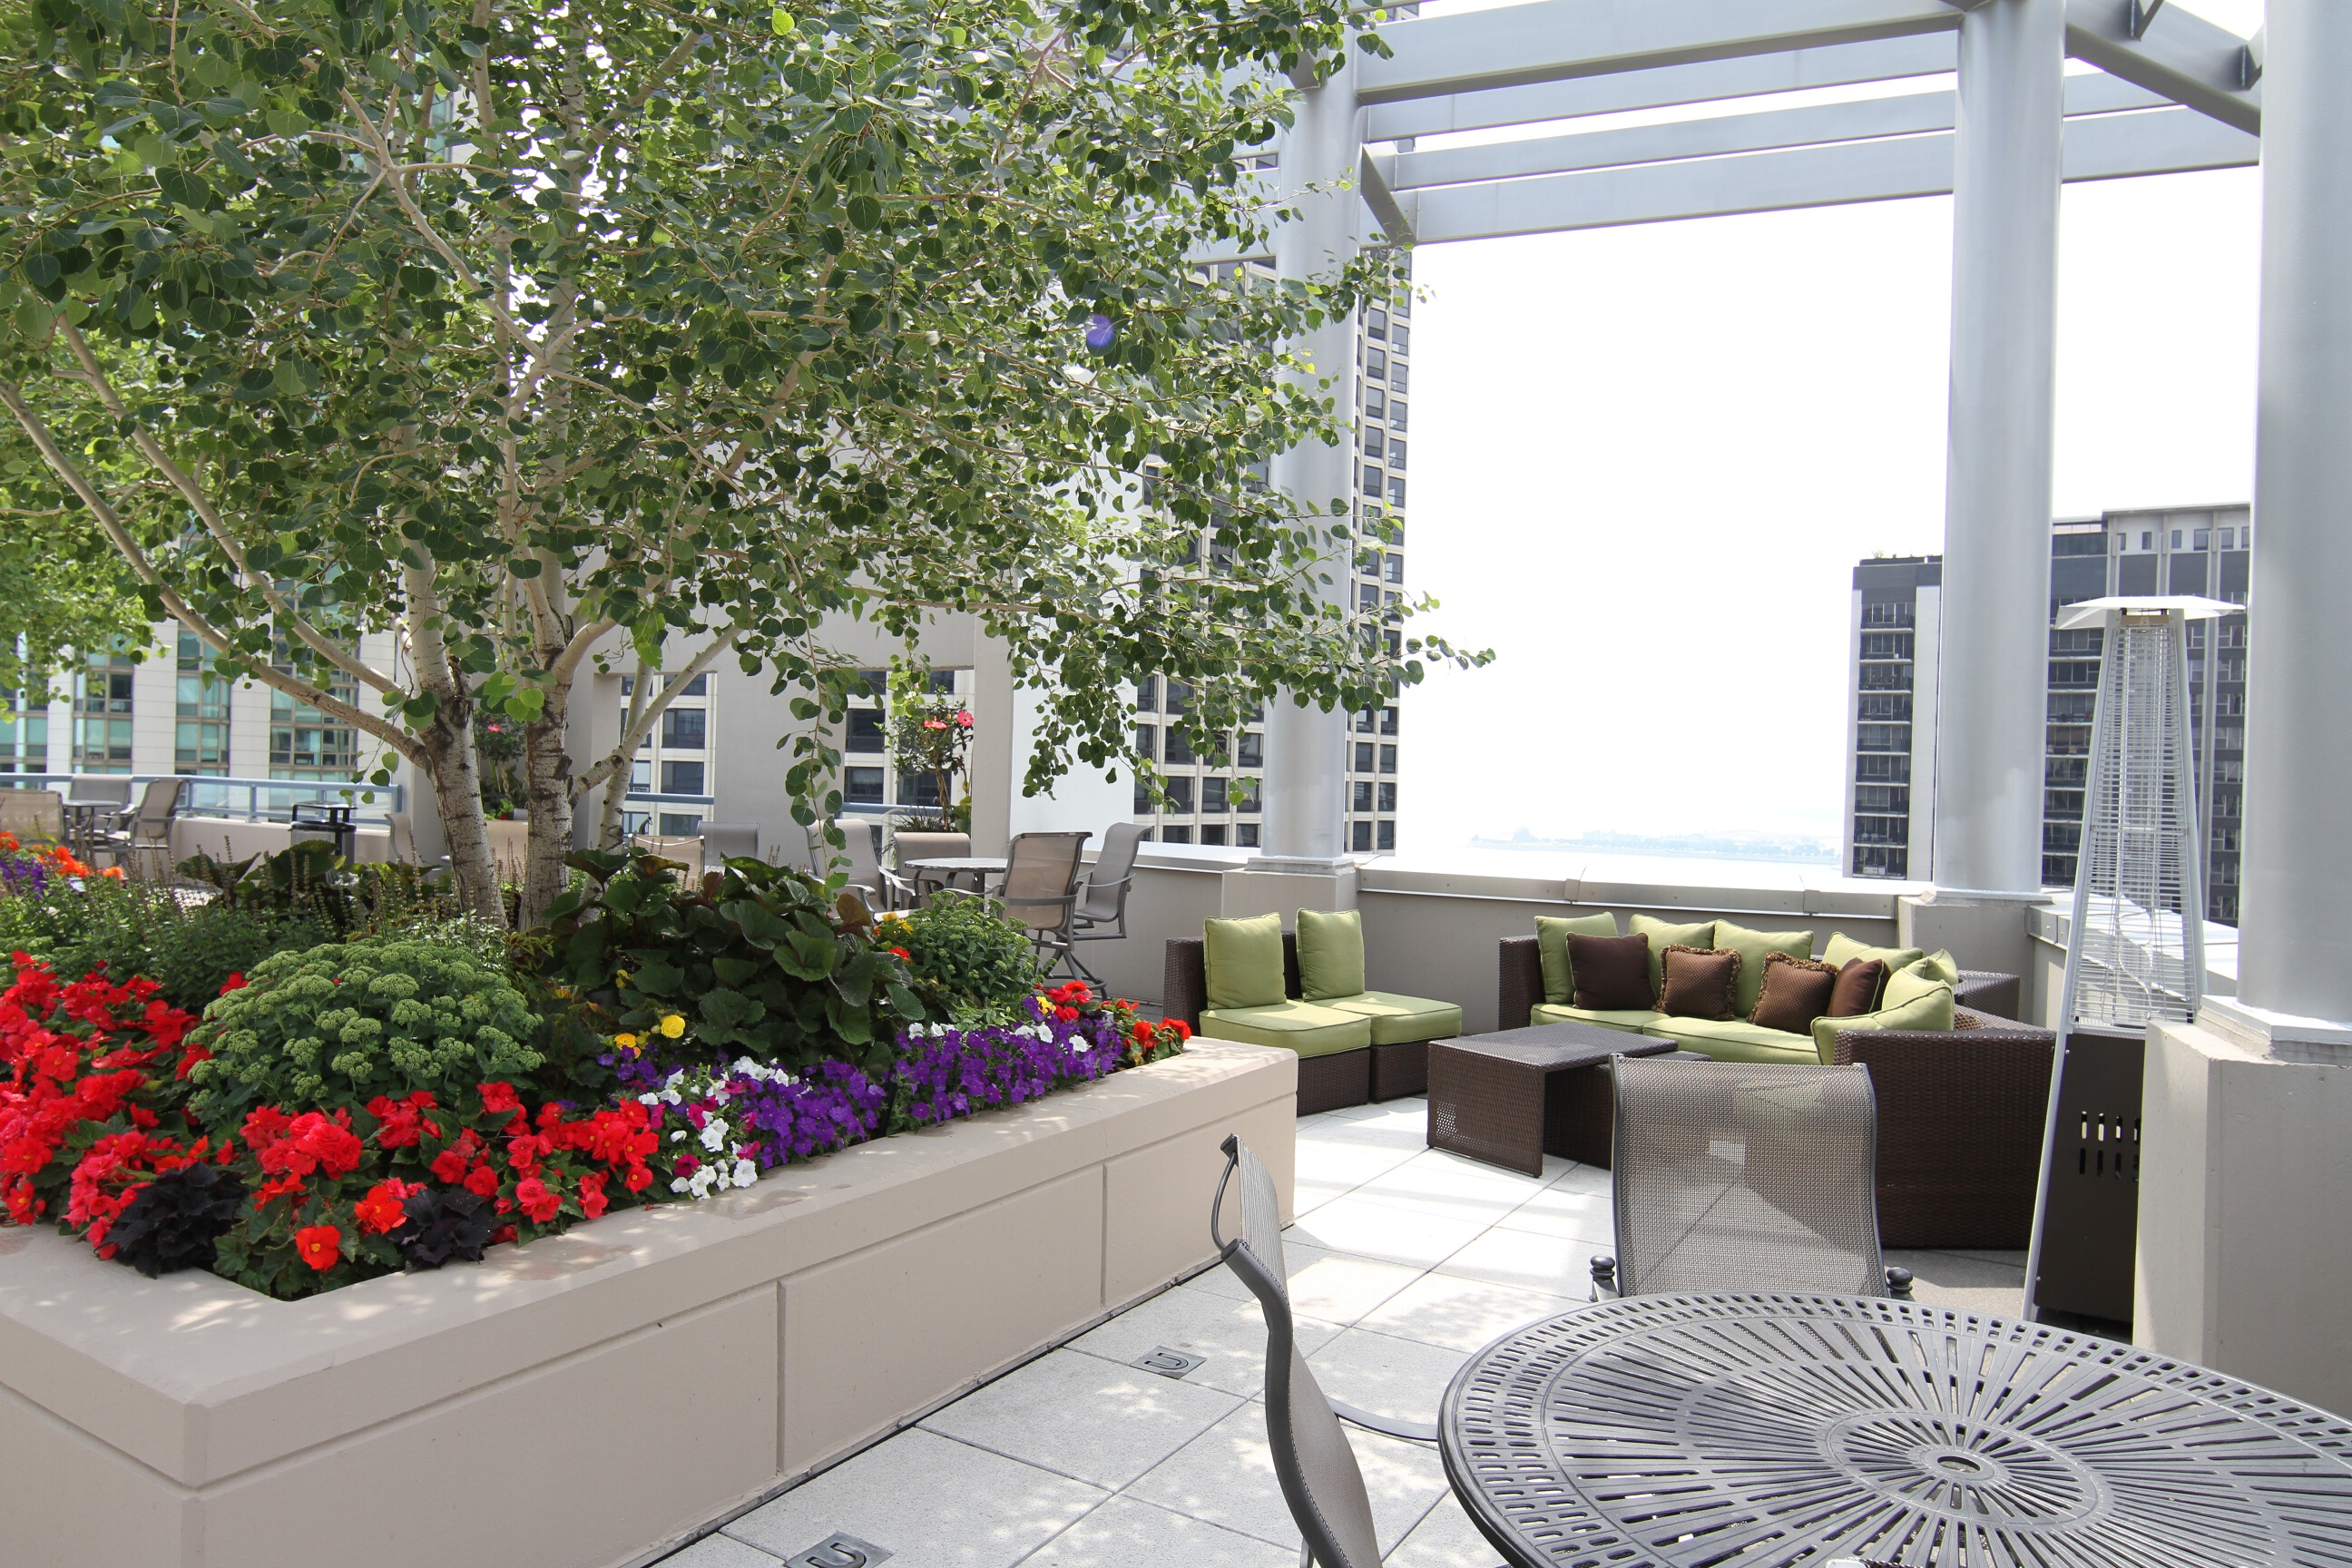 Southwest rooftop lounge area